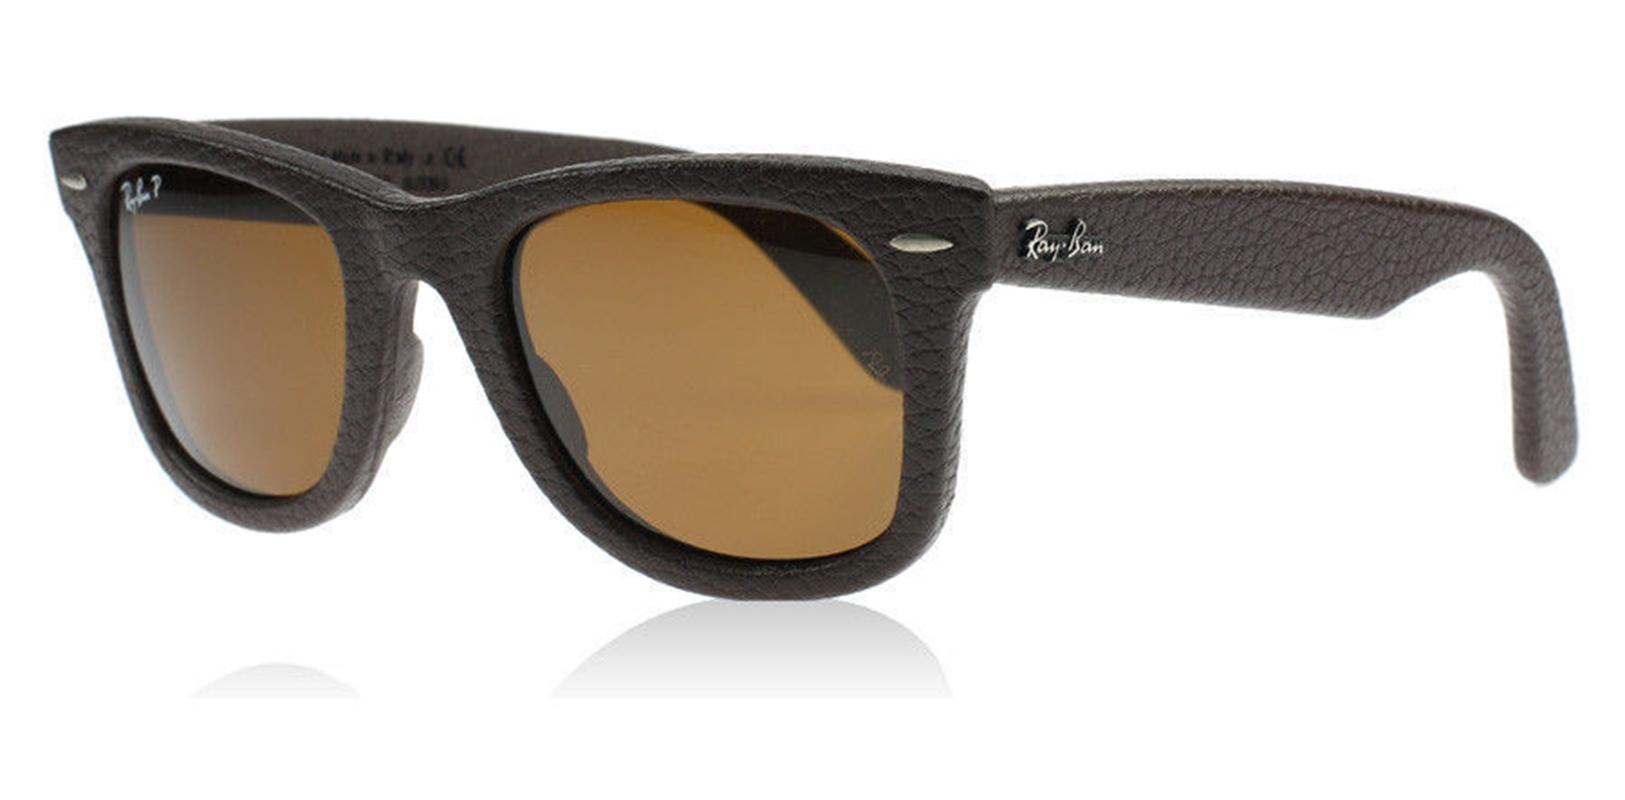 5b5d5e2568295 ... discount code for 4221 sunglasses y84zi4724mnt d73ab 0b6e7 cheap ray  ban new ray ban women sunglasses